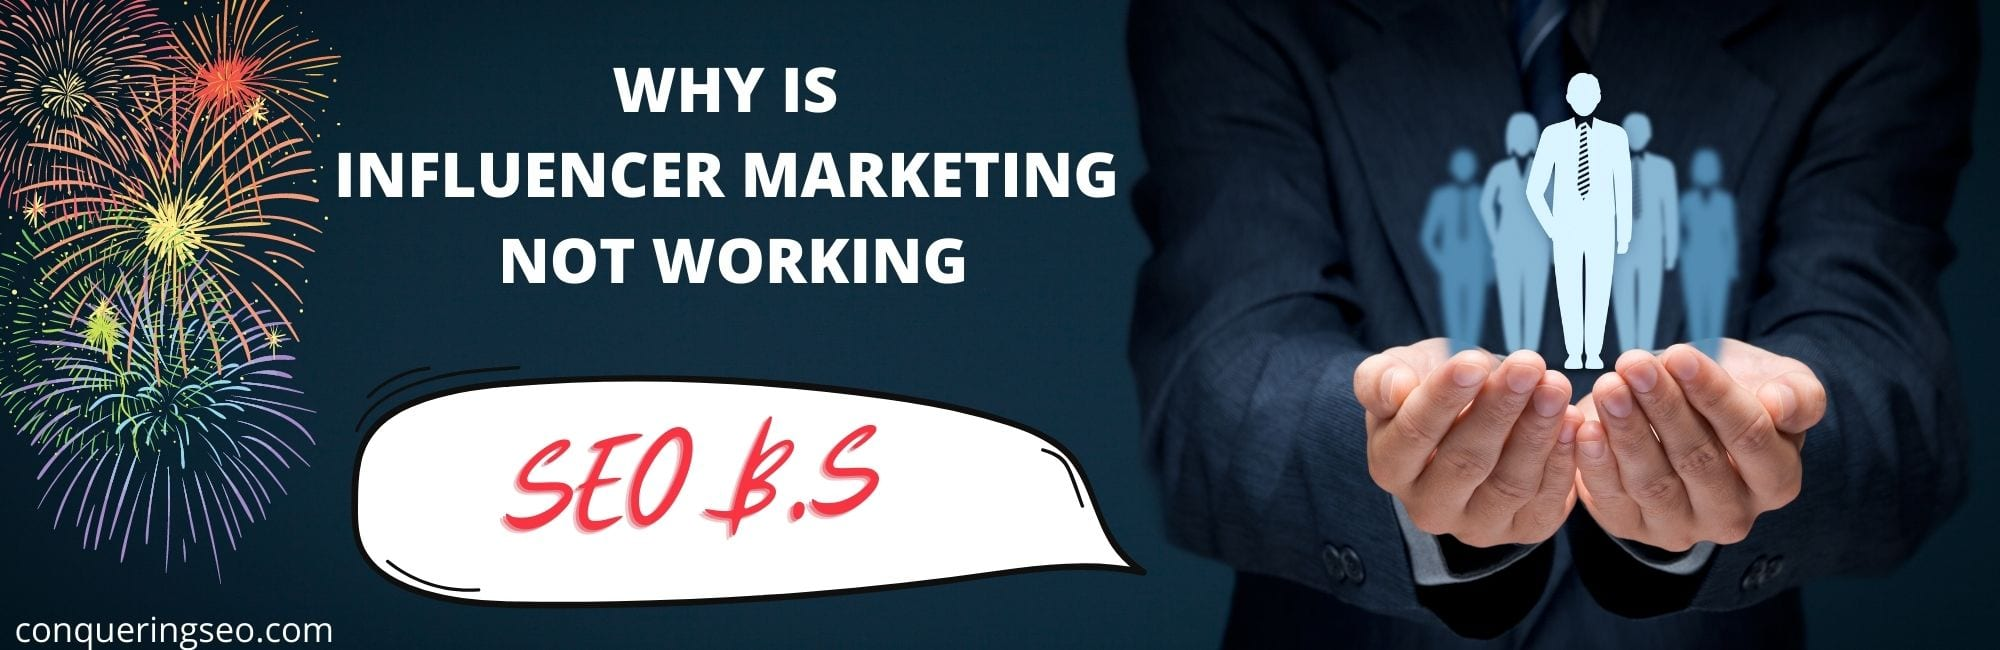 picture of Why is Influencer Marketing Not Working banner